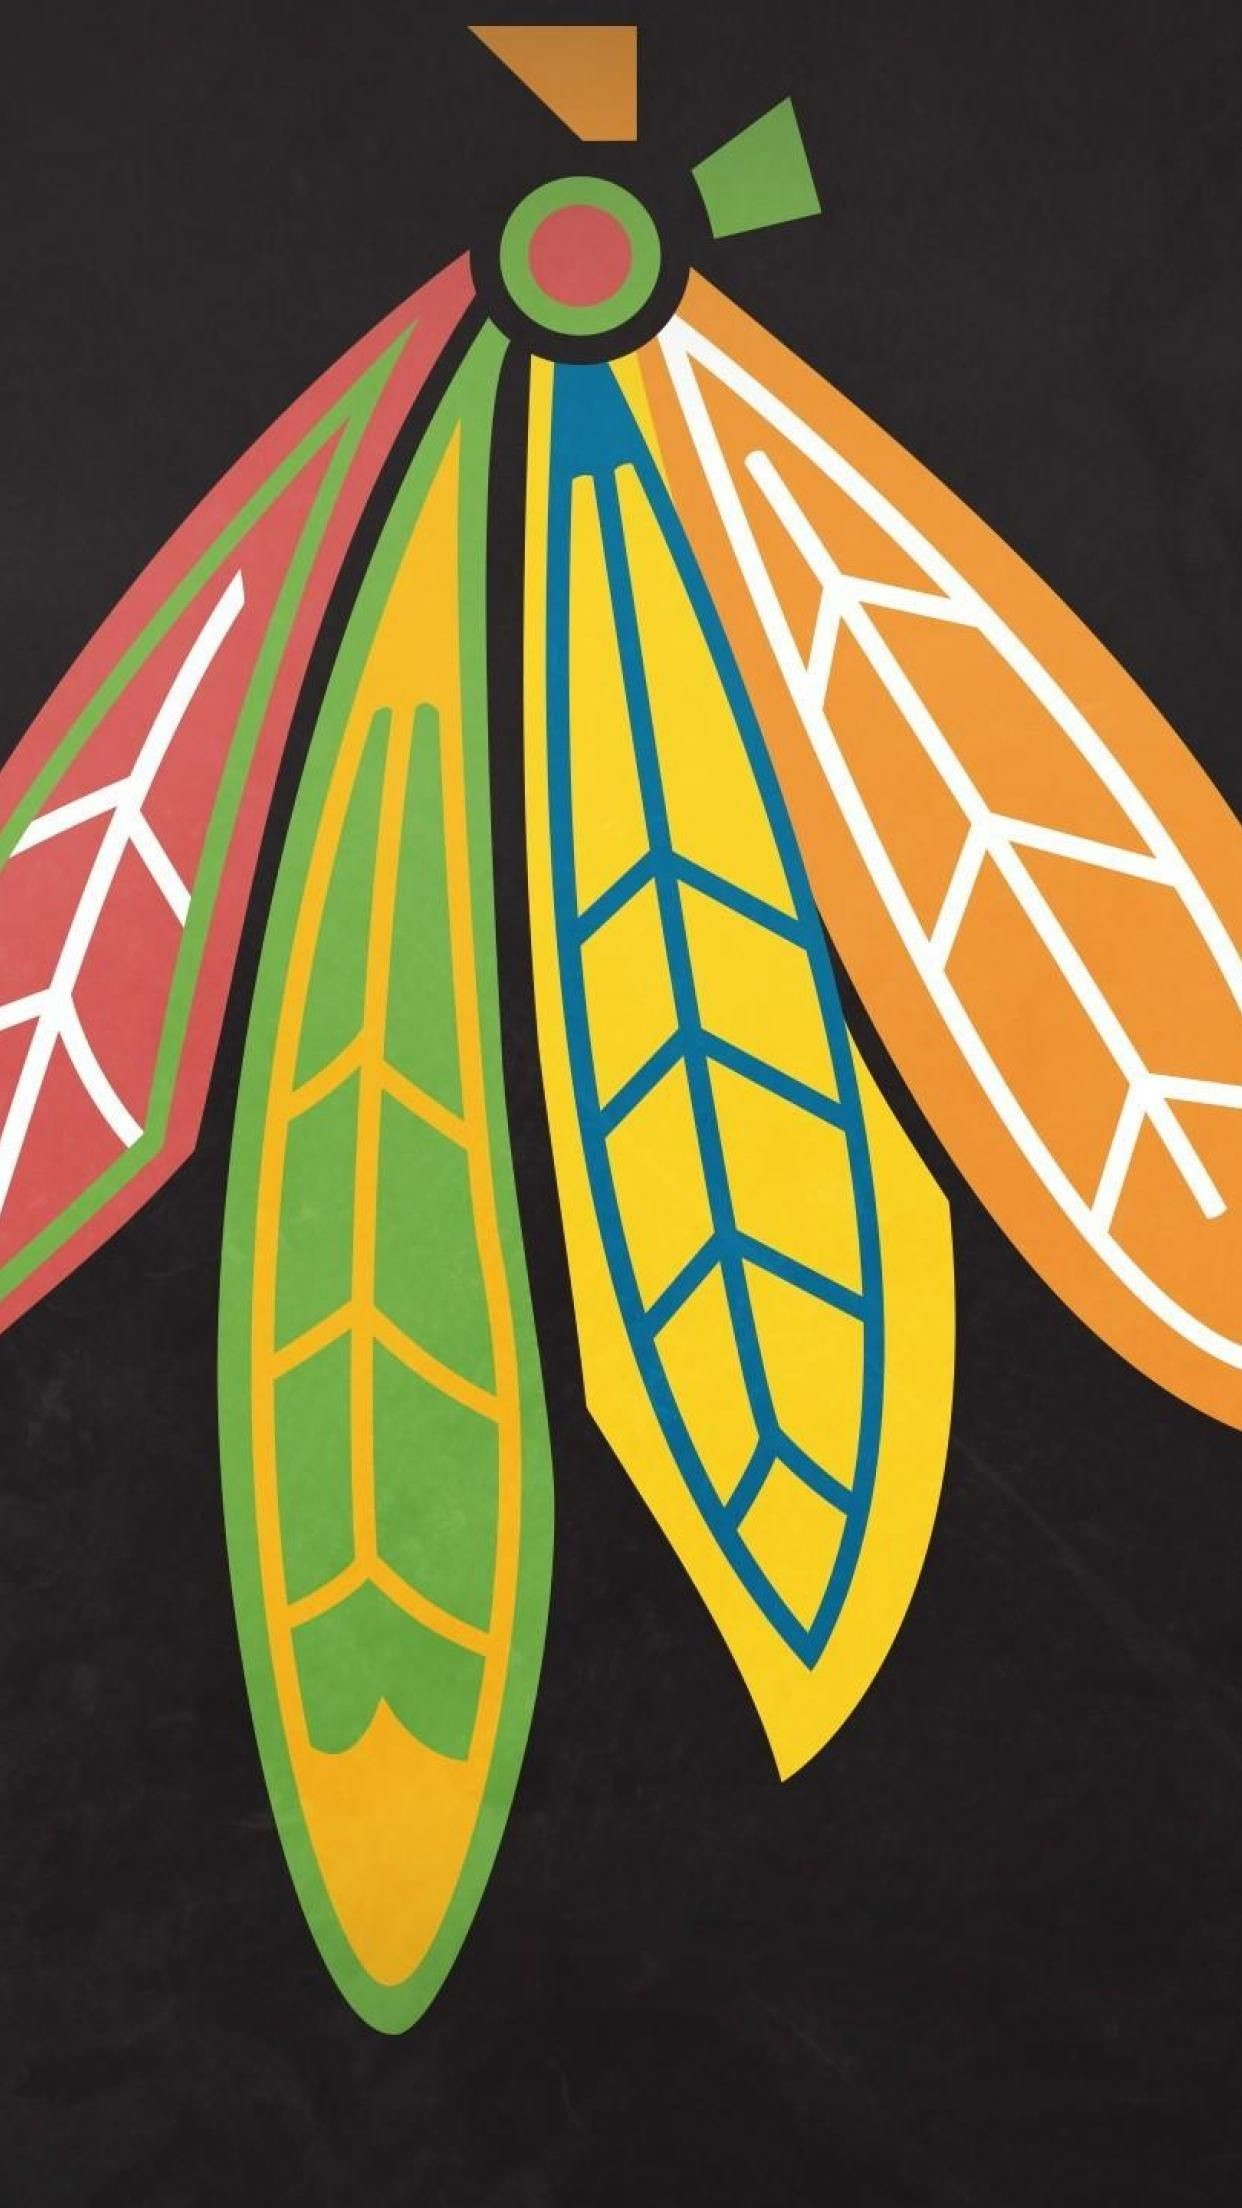 1242x2208 Chicago blackhawks Hockey hockey Sports Ice Blackhawks NHL Chicago .